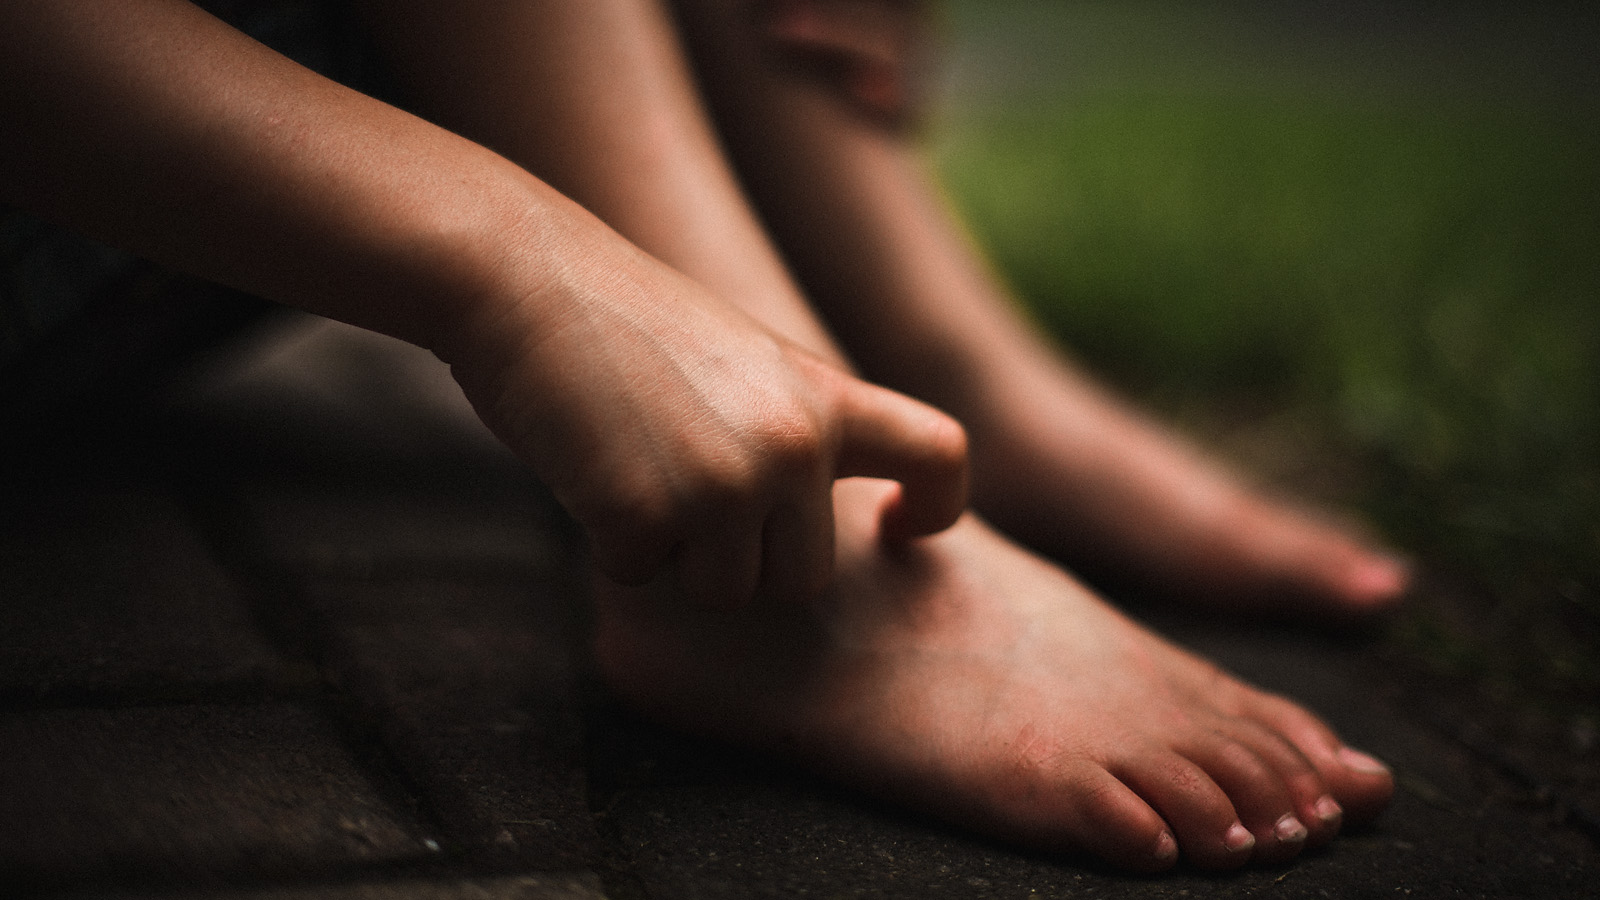 Picture Of Boys Feet And Hands By Celeste Pavlik